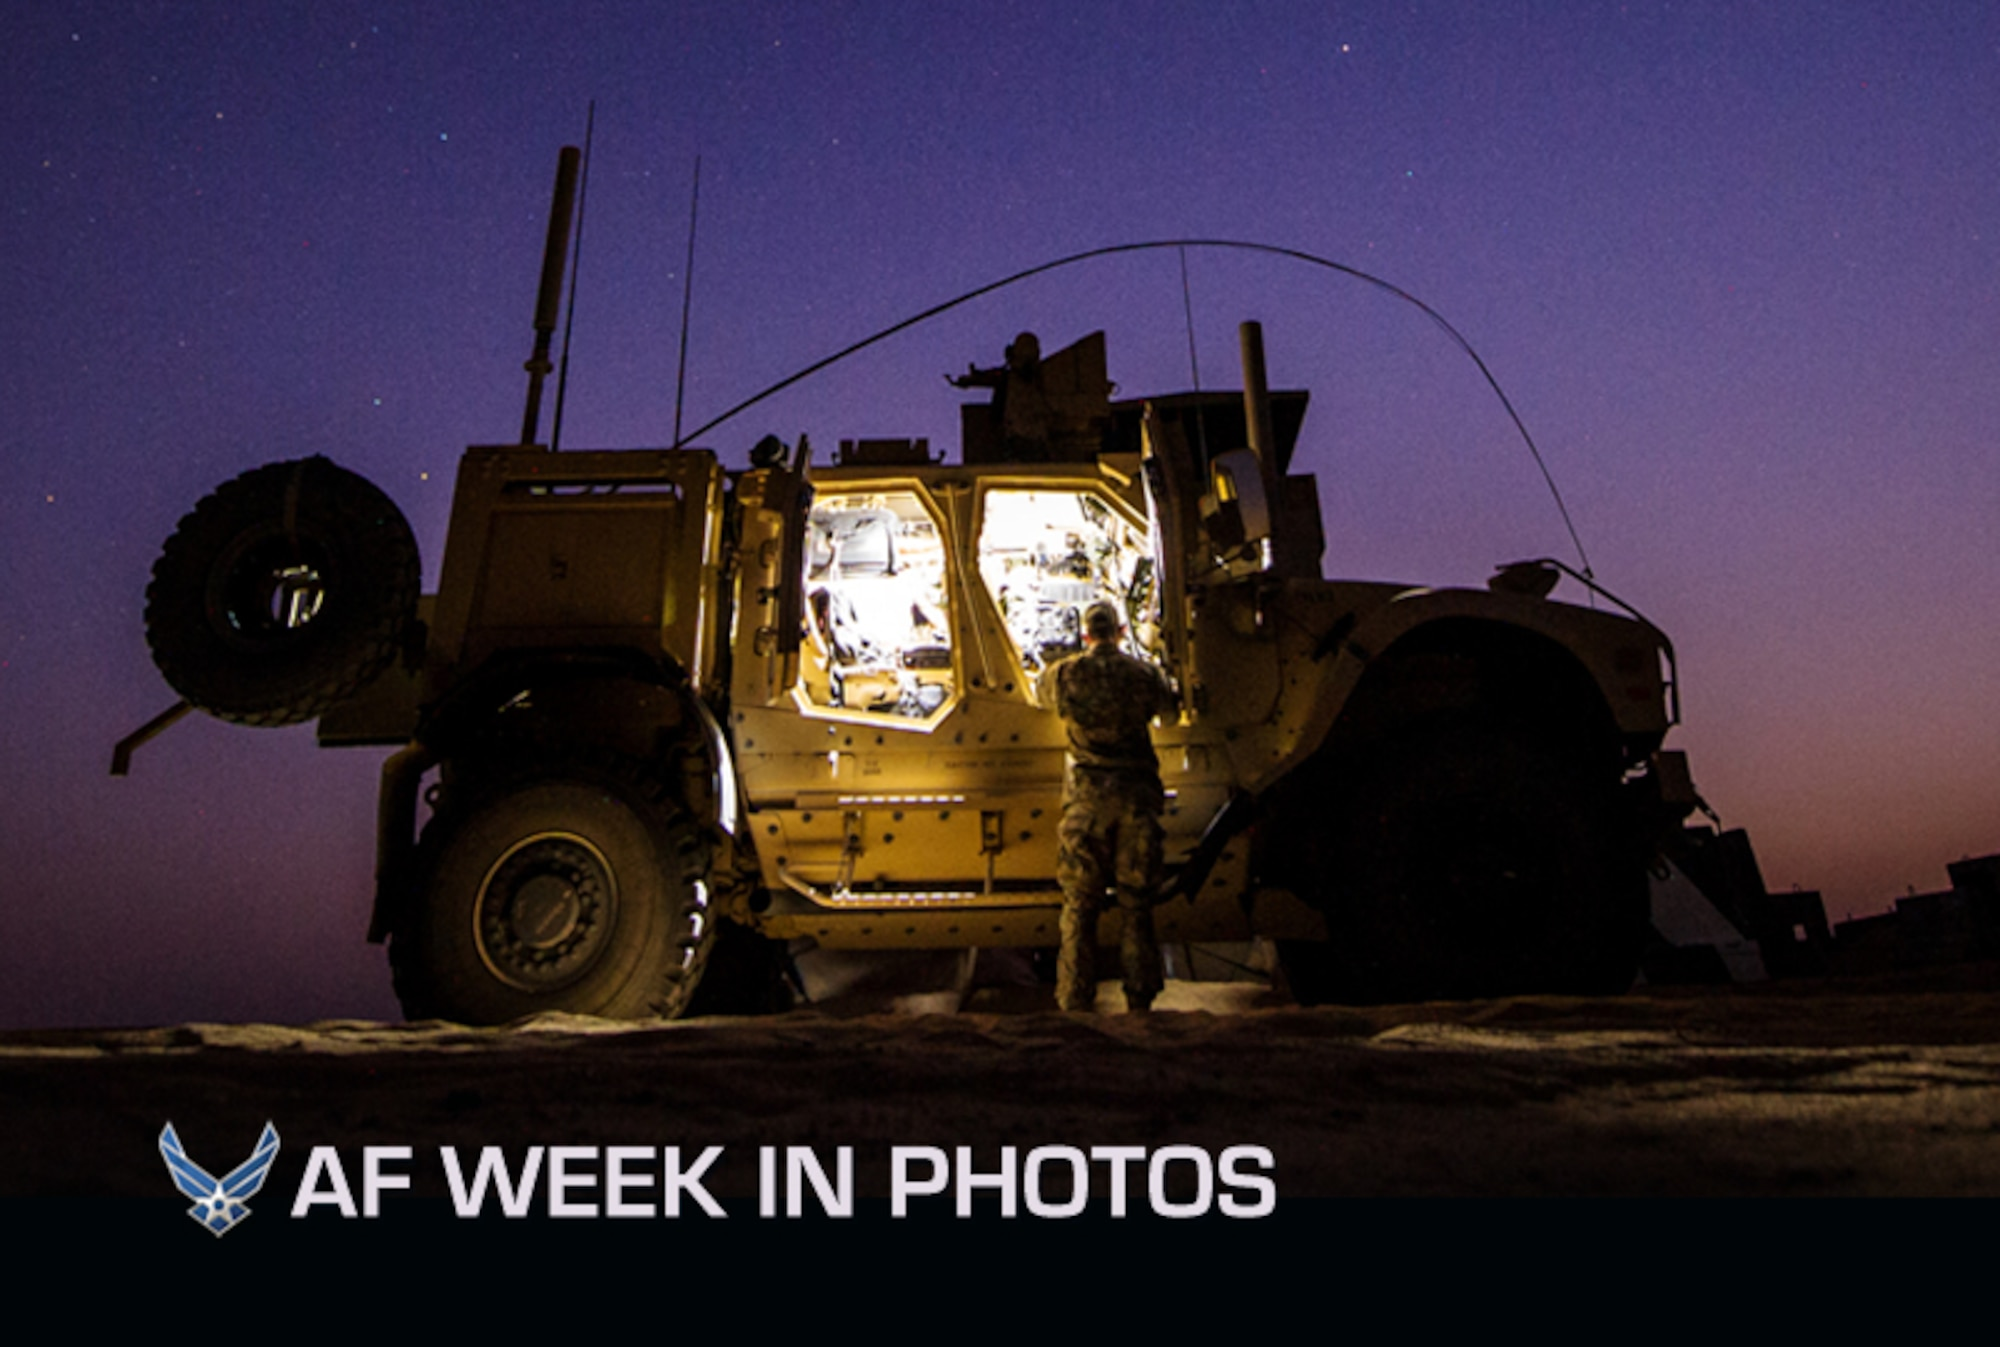 First Lt. Drew Parks grabs equipment from a Mine-Resistant, Ambush-Protected, All-Terrain Vehicle on Sept. 11, 2012, in Southwest Asia. Parks is a joint terminal attack controller with the 82nd Expeditionary Air Support Operations Squadron. (U.S. Air Force photo/Staff Sgt. Jonathan Snyder)